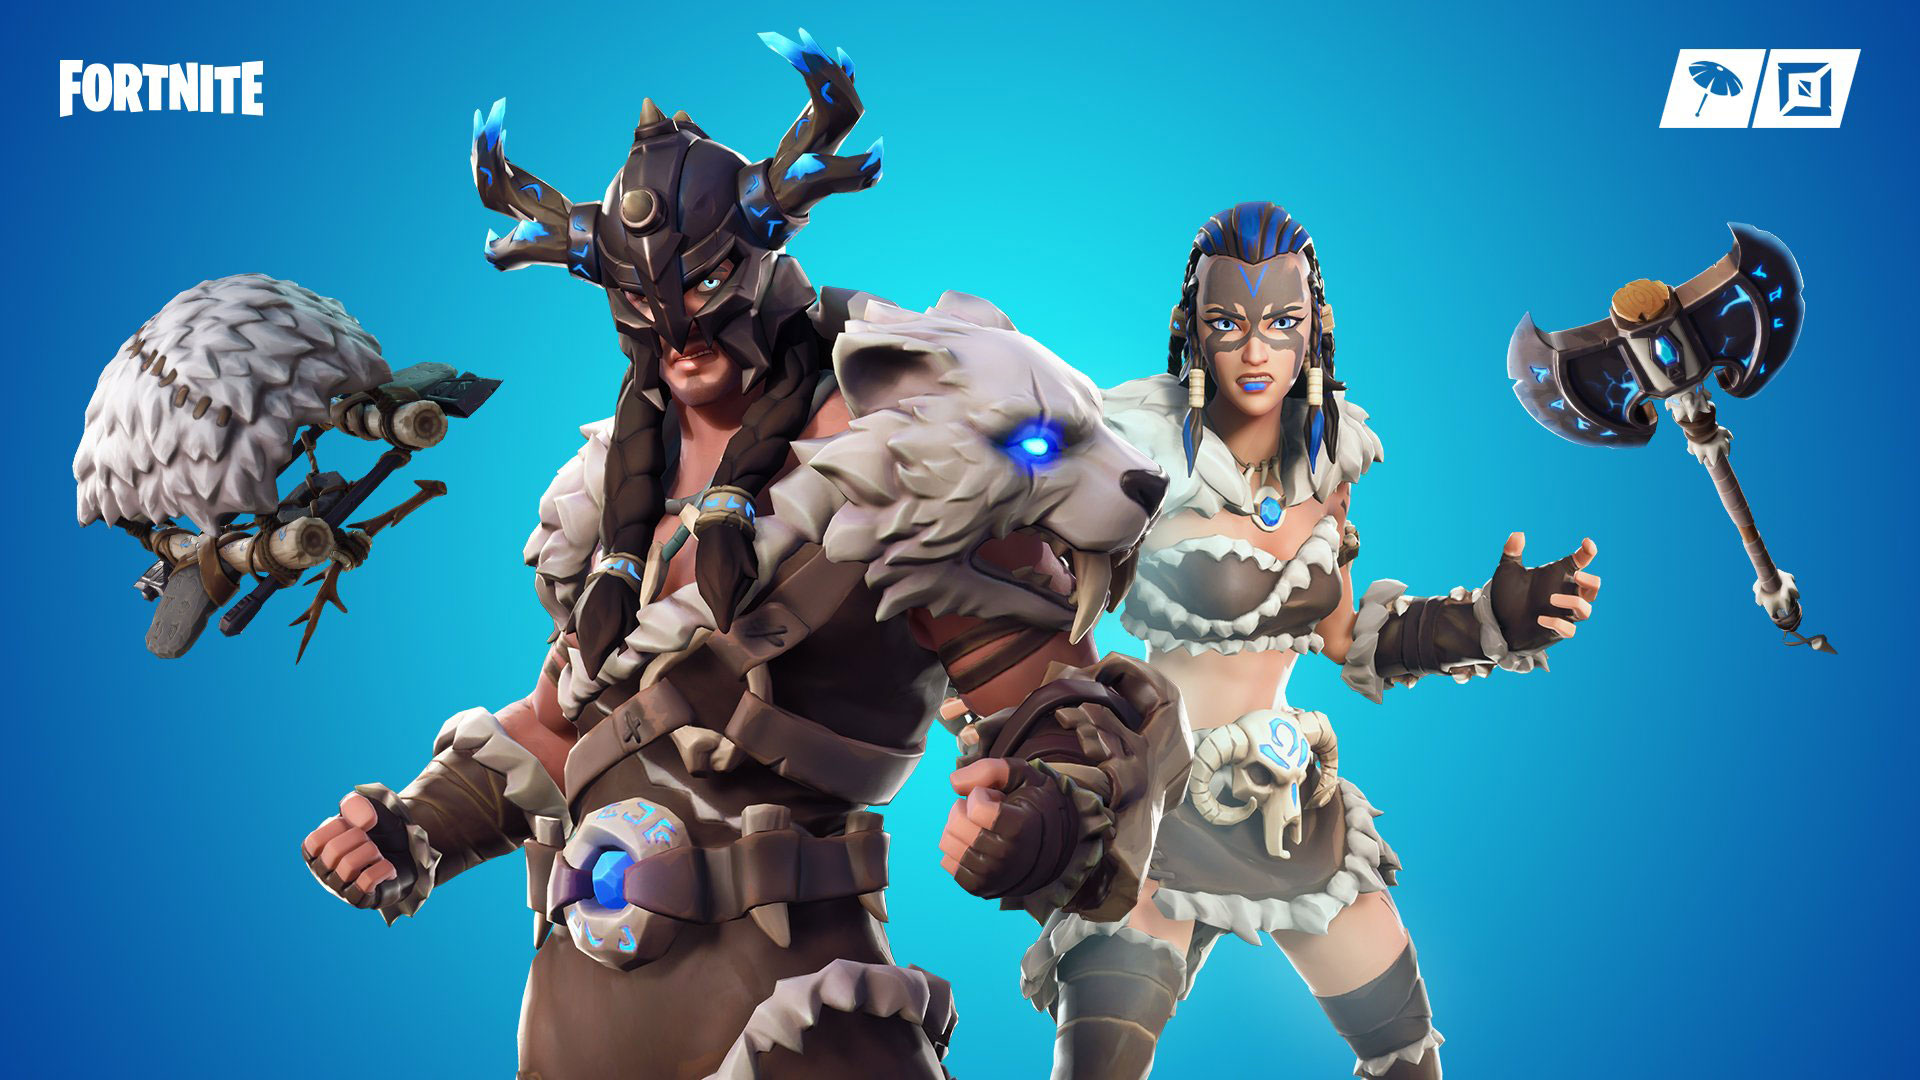 Fortnite Fyra Skin - Outfit, PNGs, Images - Pro Game Guides